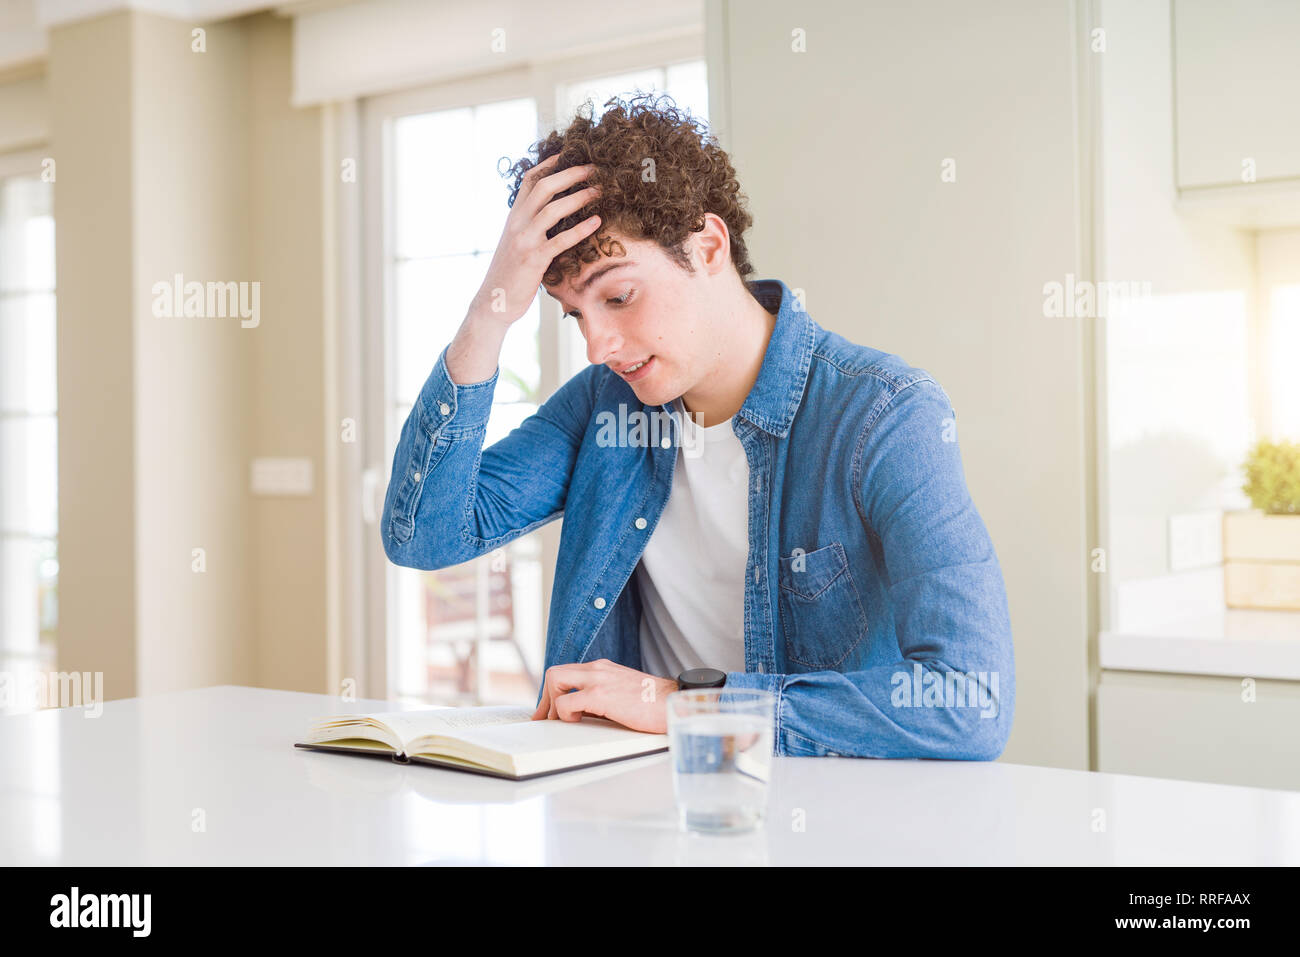 Young man reading a book at home stressed with hand on head, shocked with shame and surprise face, angry and frustrated. Fear and upset for mistake. Stock Photo